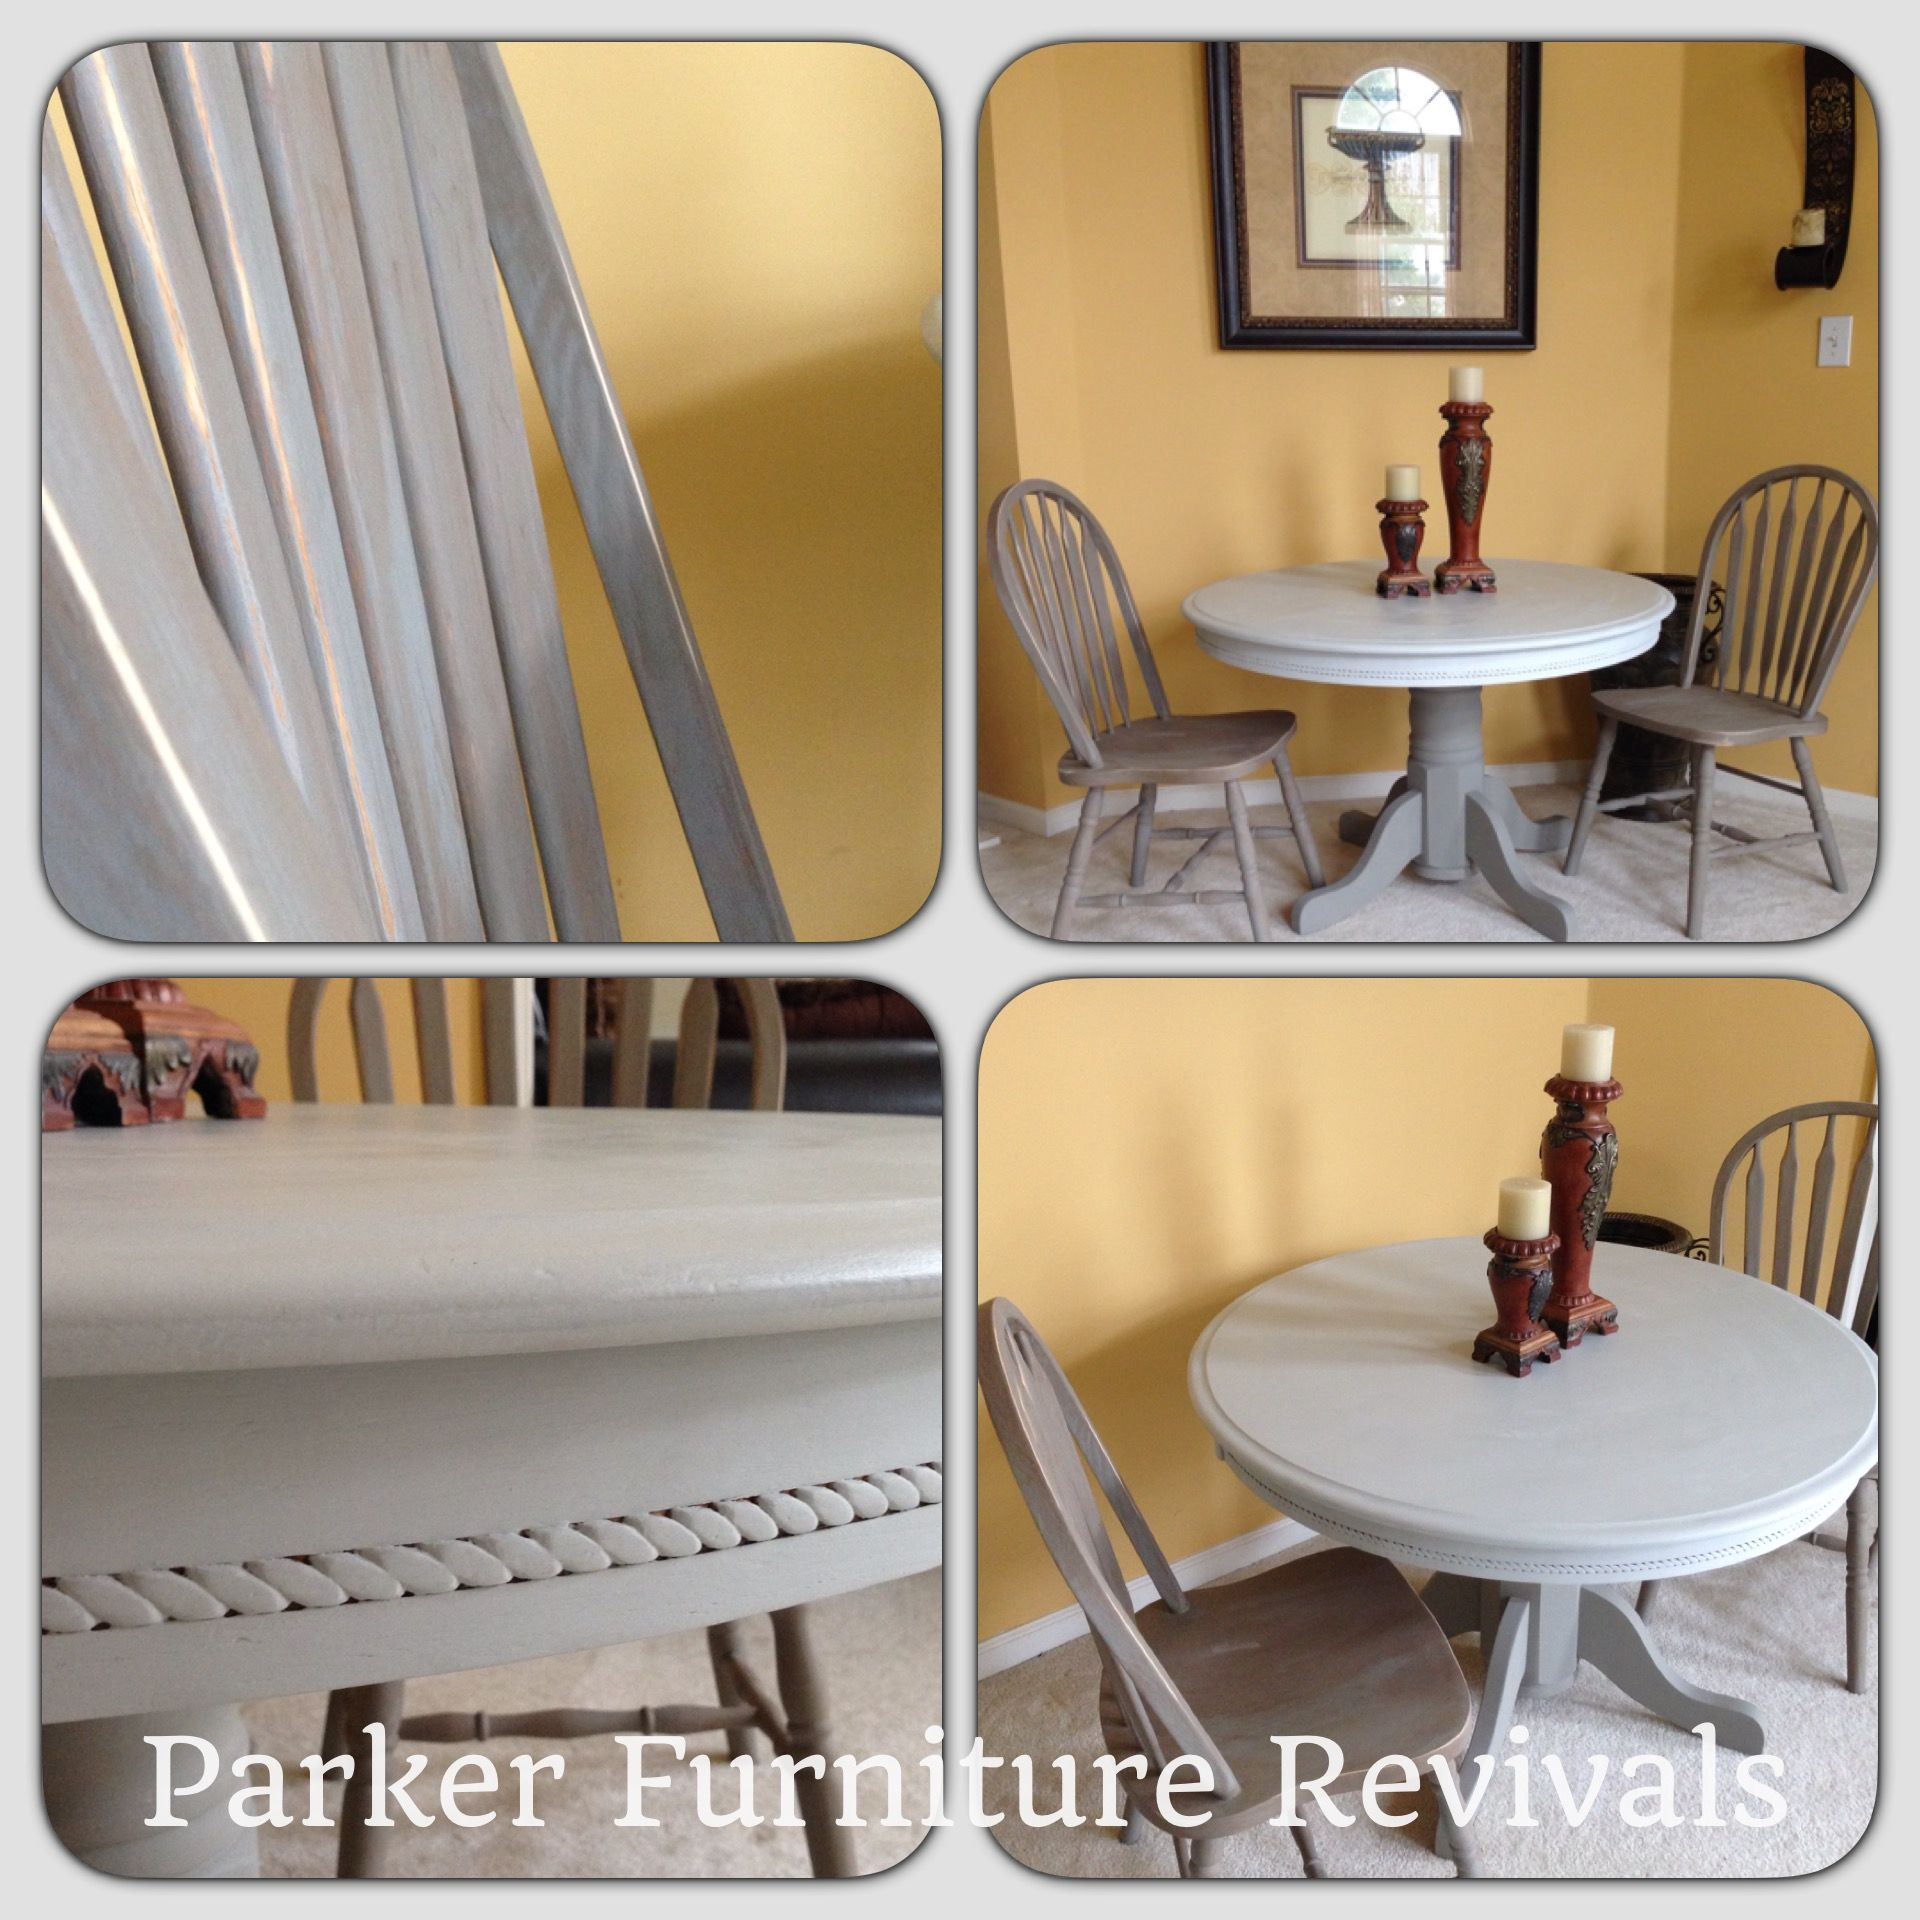 Painted In Martha Stewart Smoke And Annie Sloan French Linen Chalk Paint.